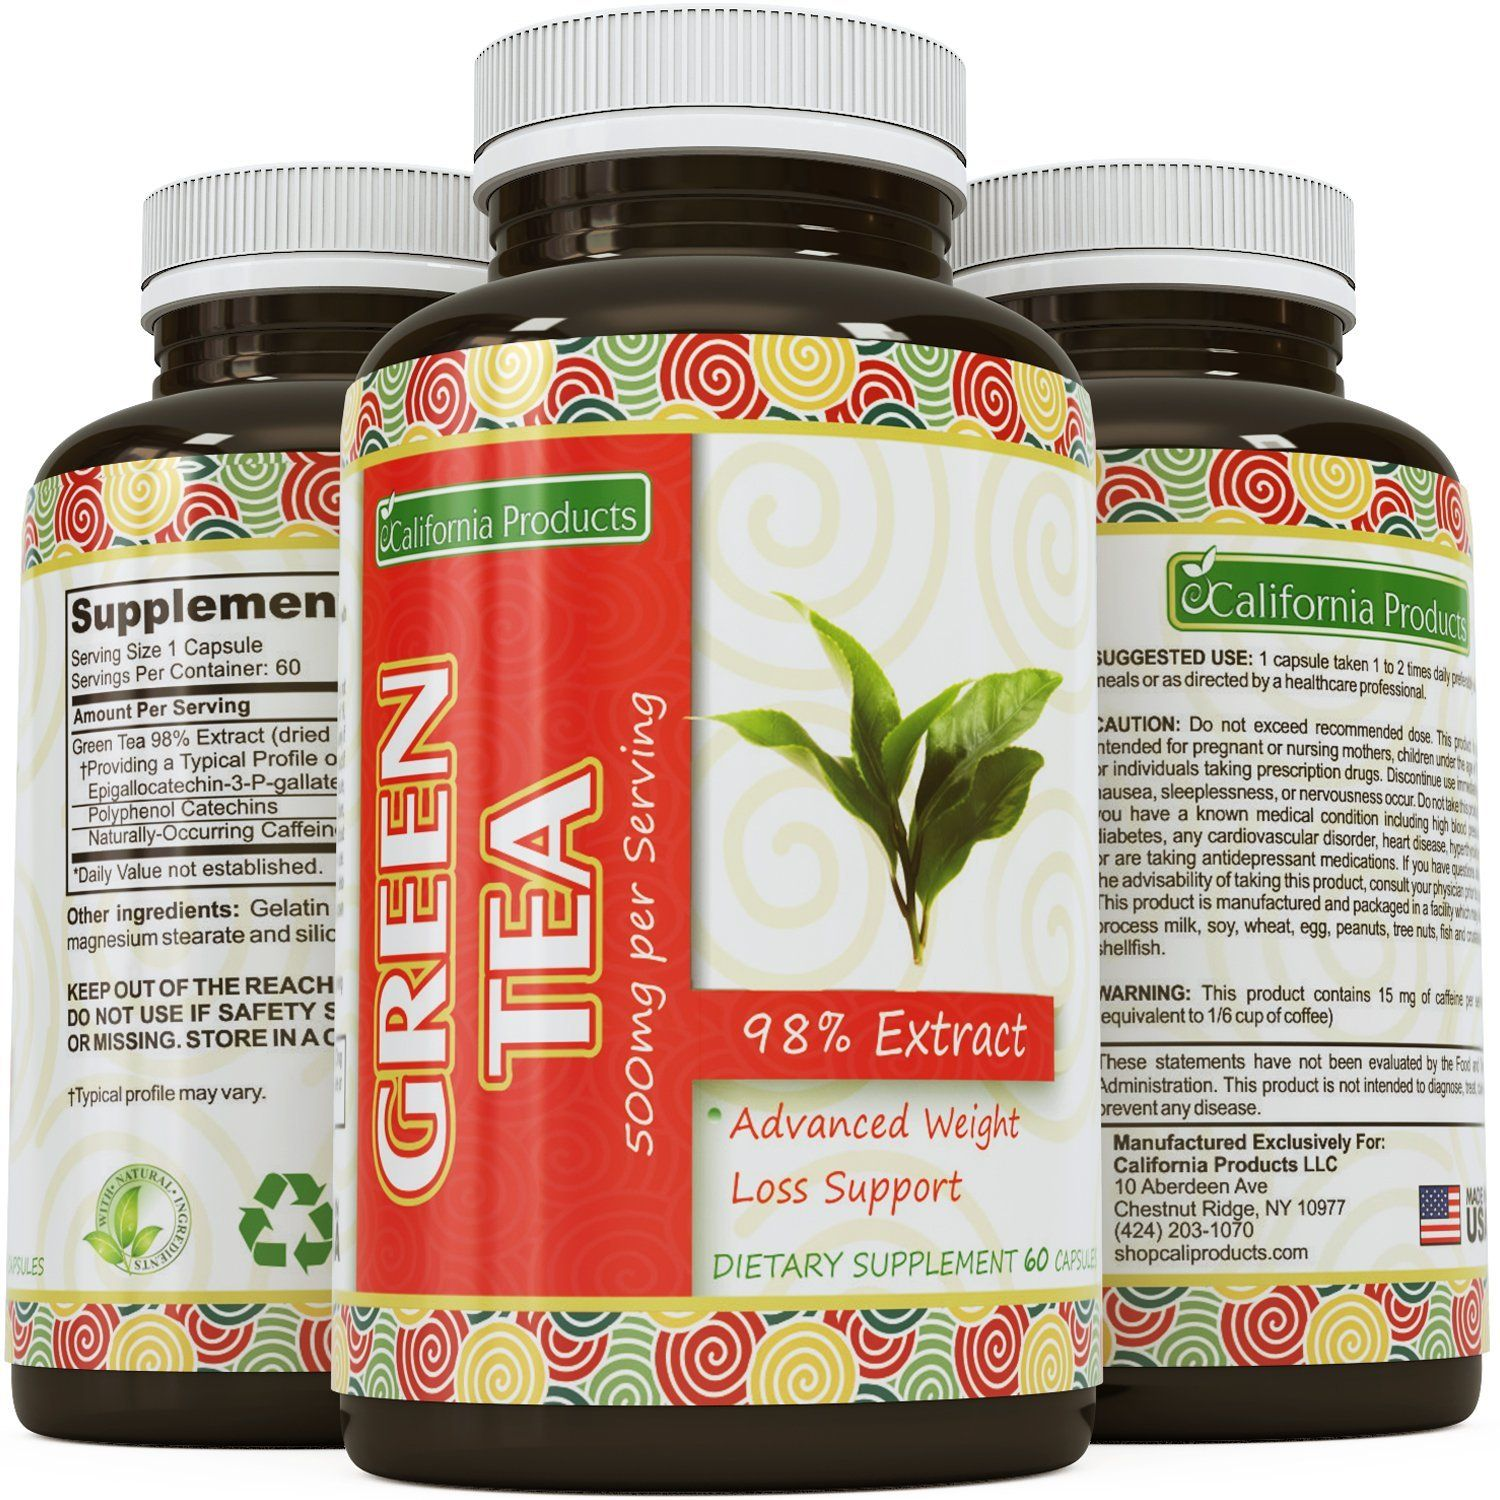 Pure garcinia extract and cleanse catalyst plus dischem image 10